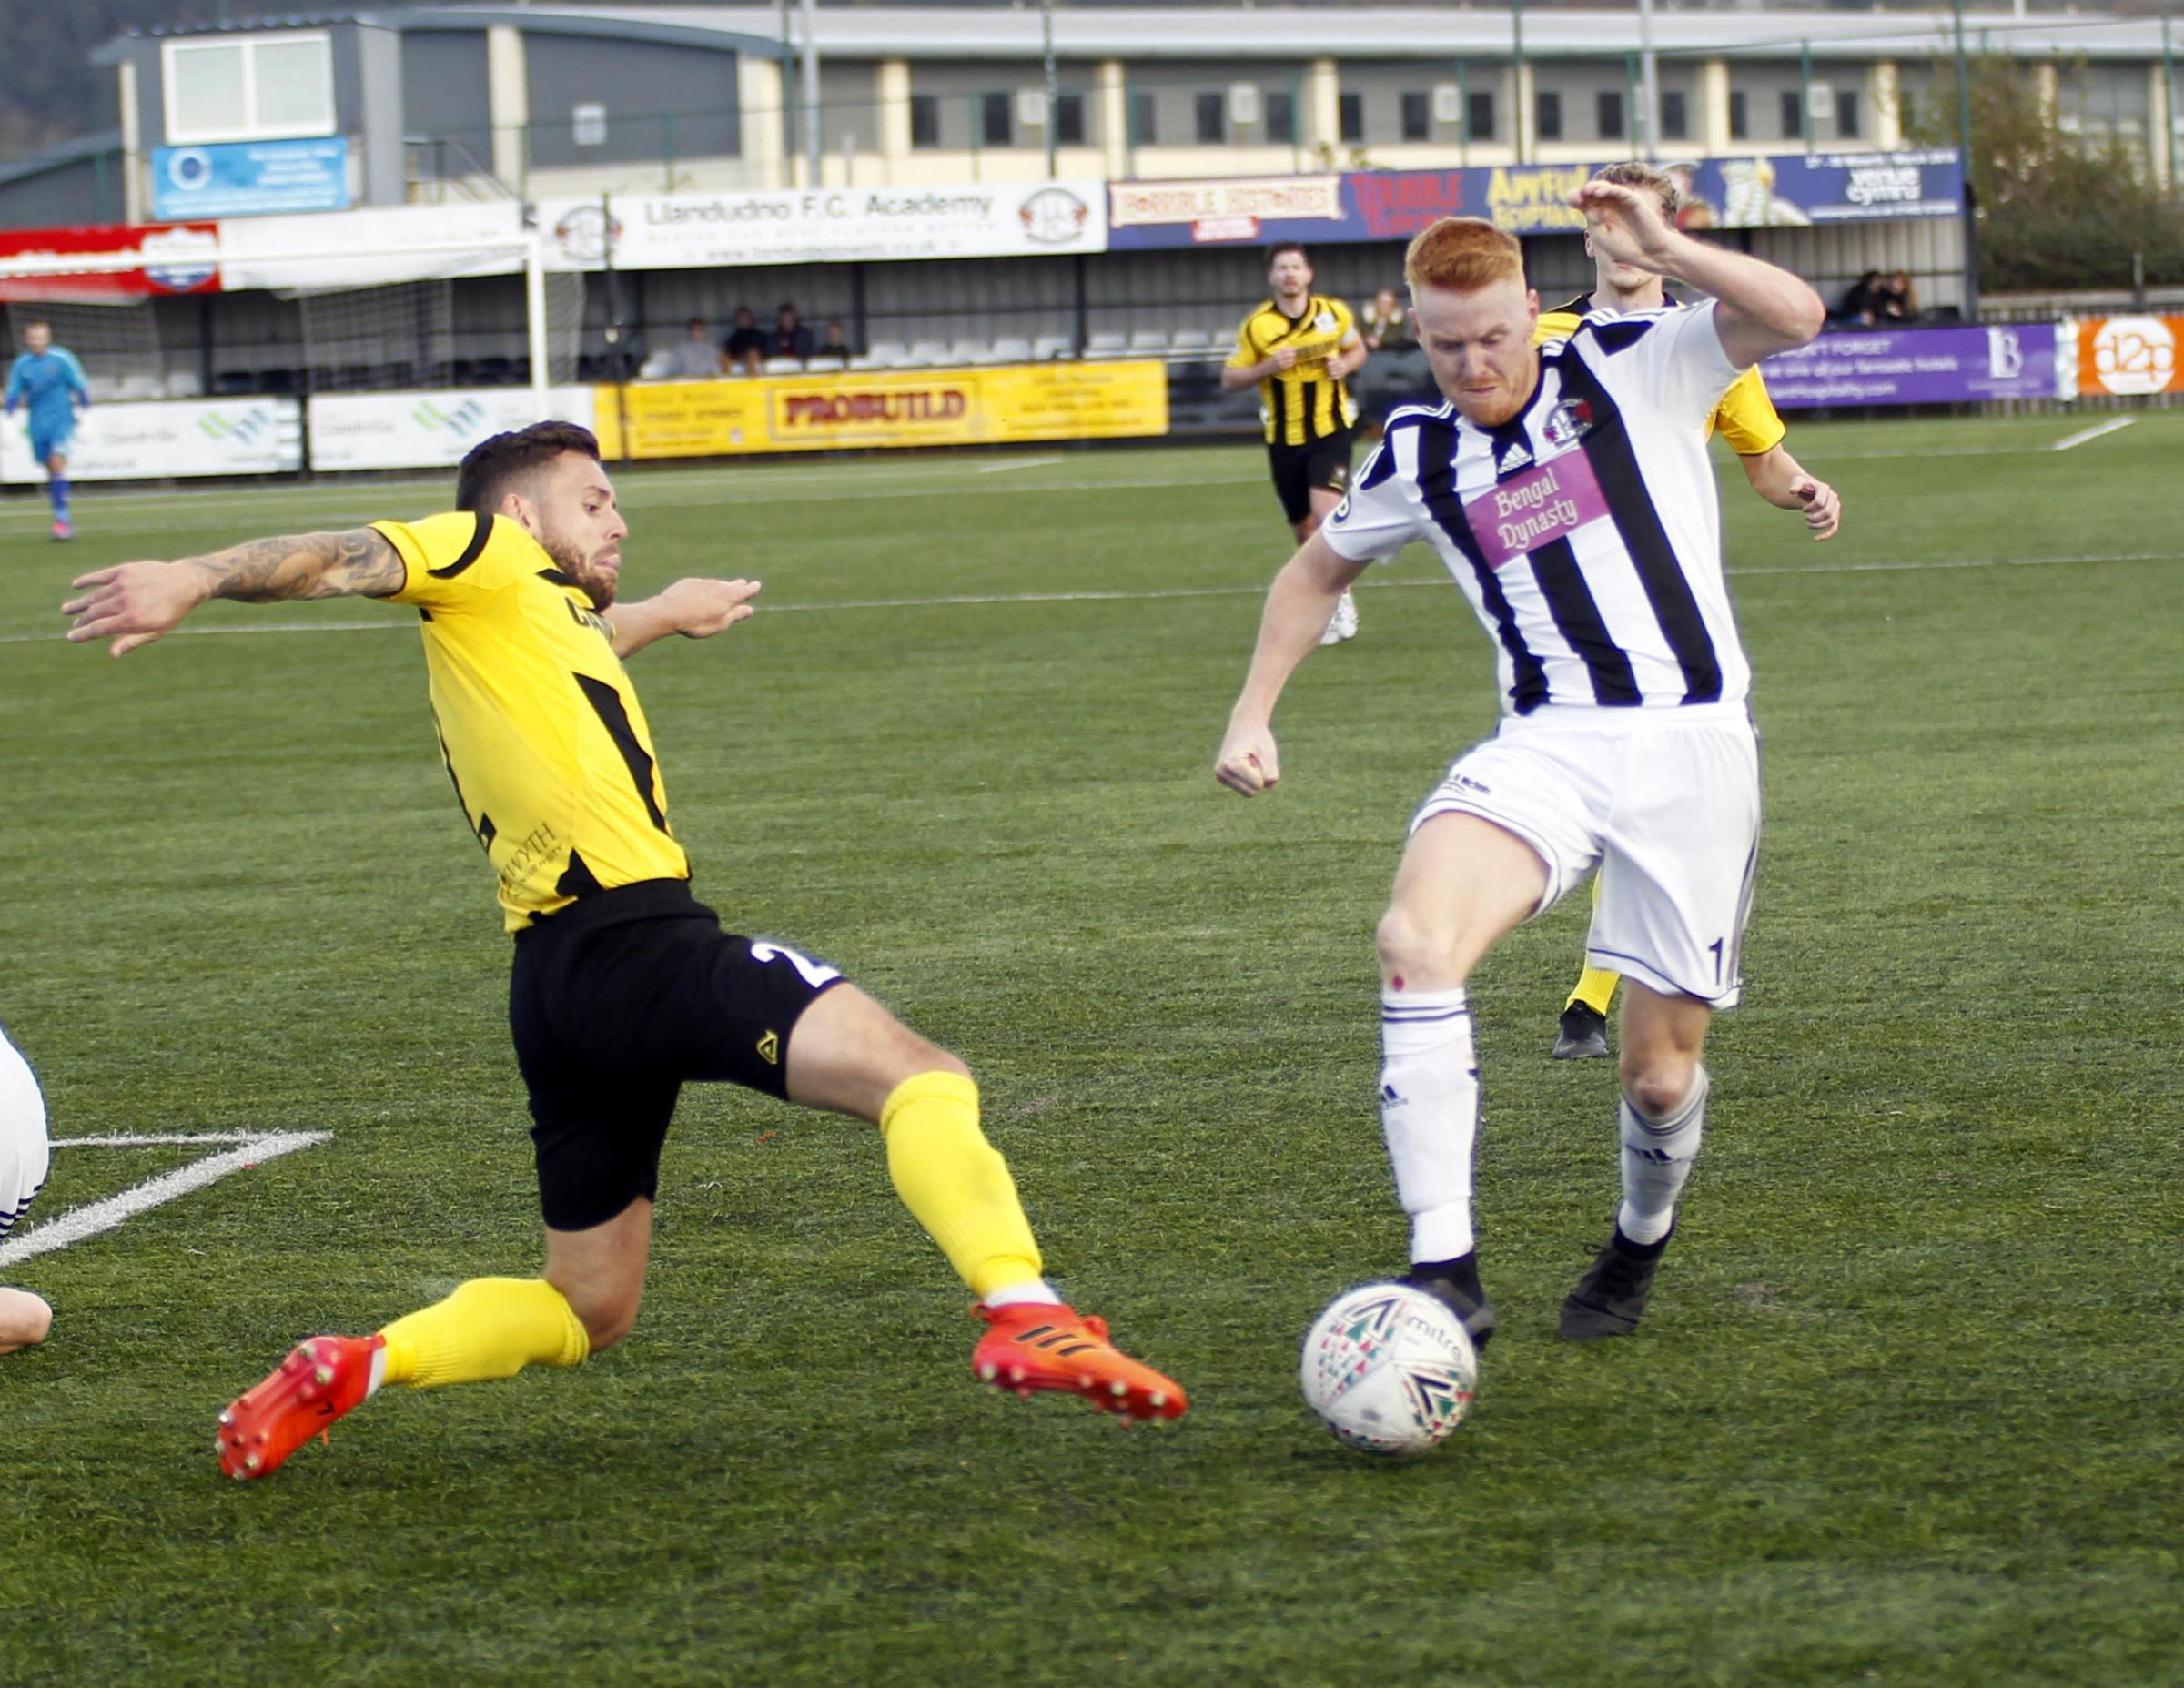 Llandudno suffered defeat at Newtown (Photo by Dave Thomas)